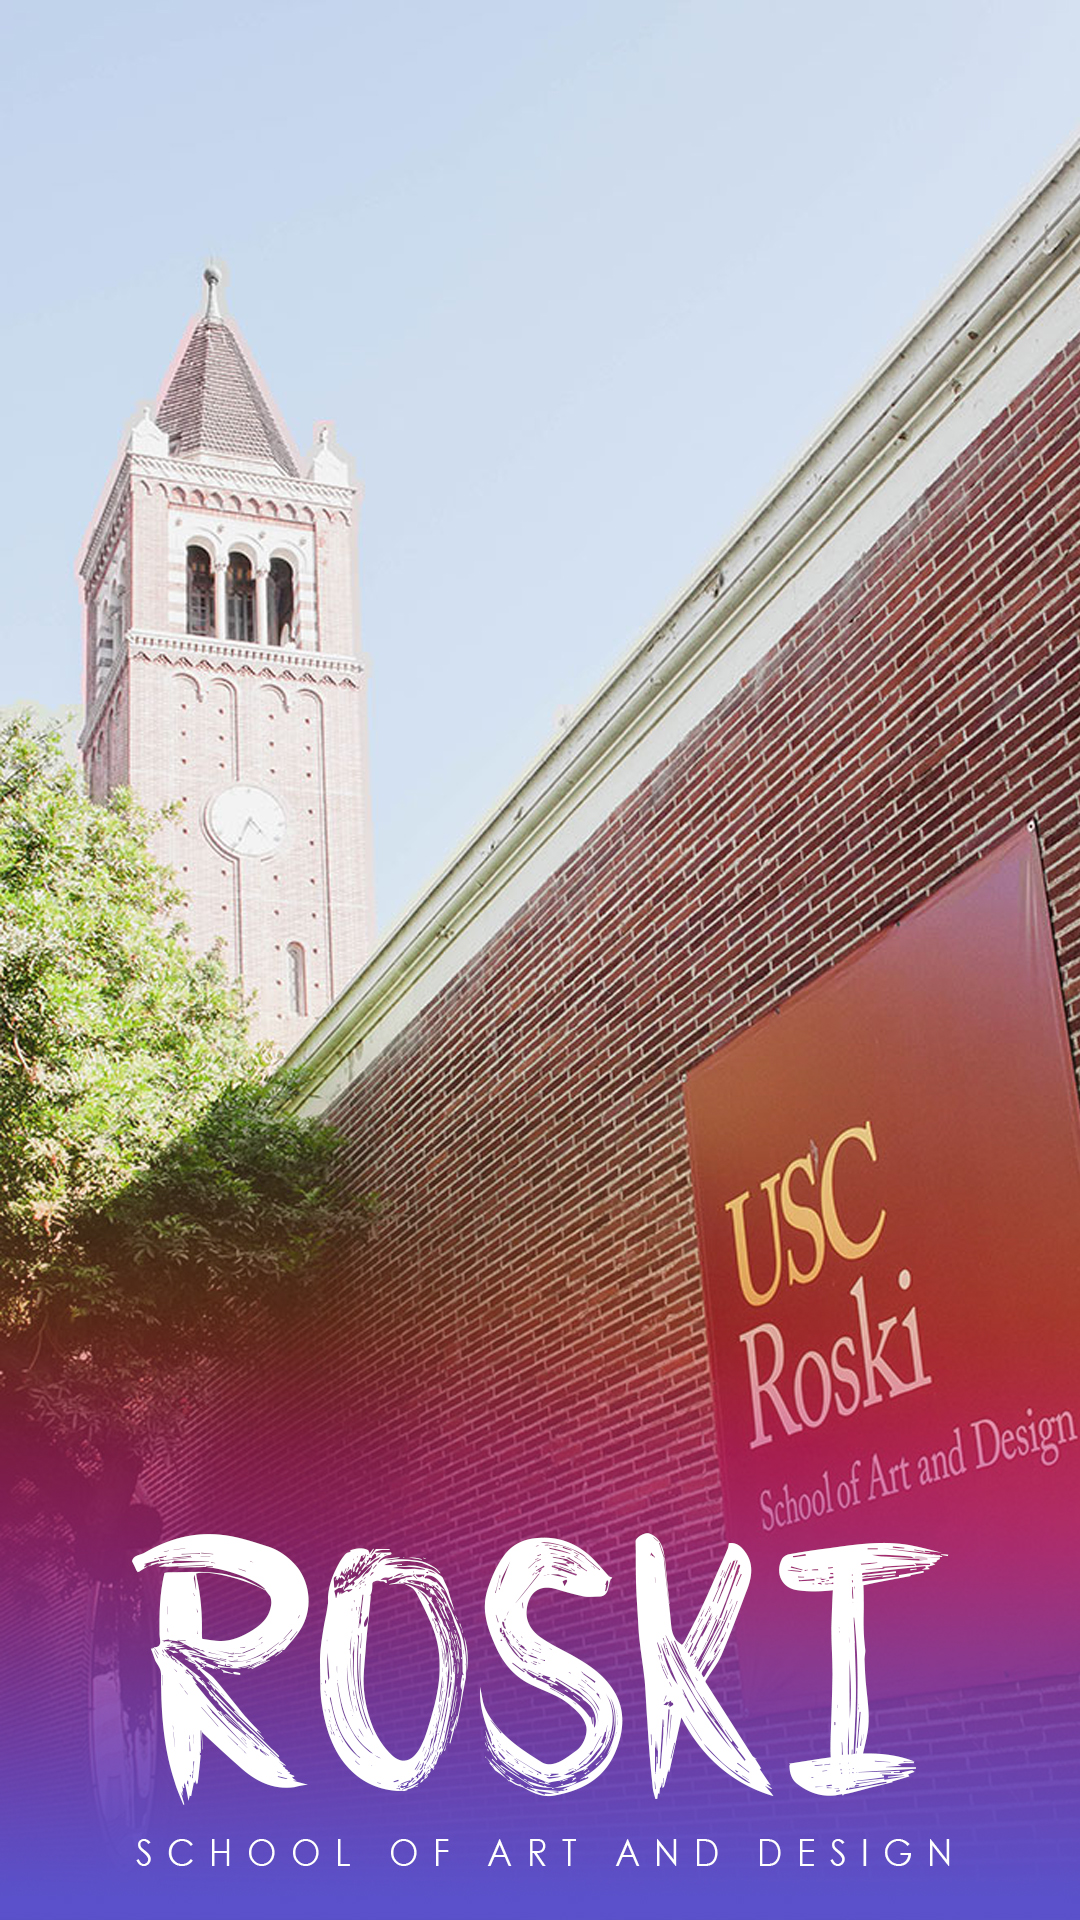 USC Roski School of Art and Design